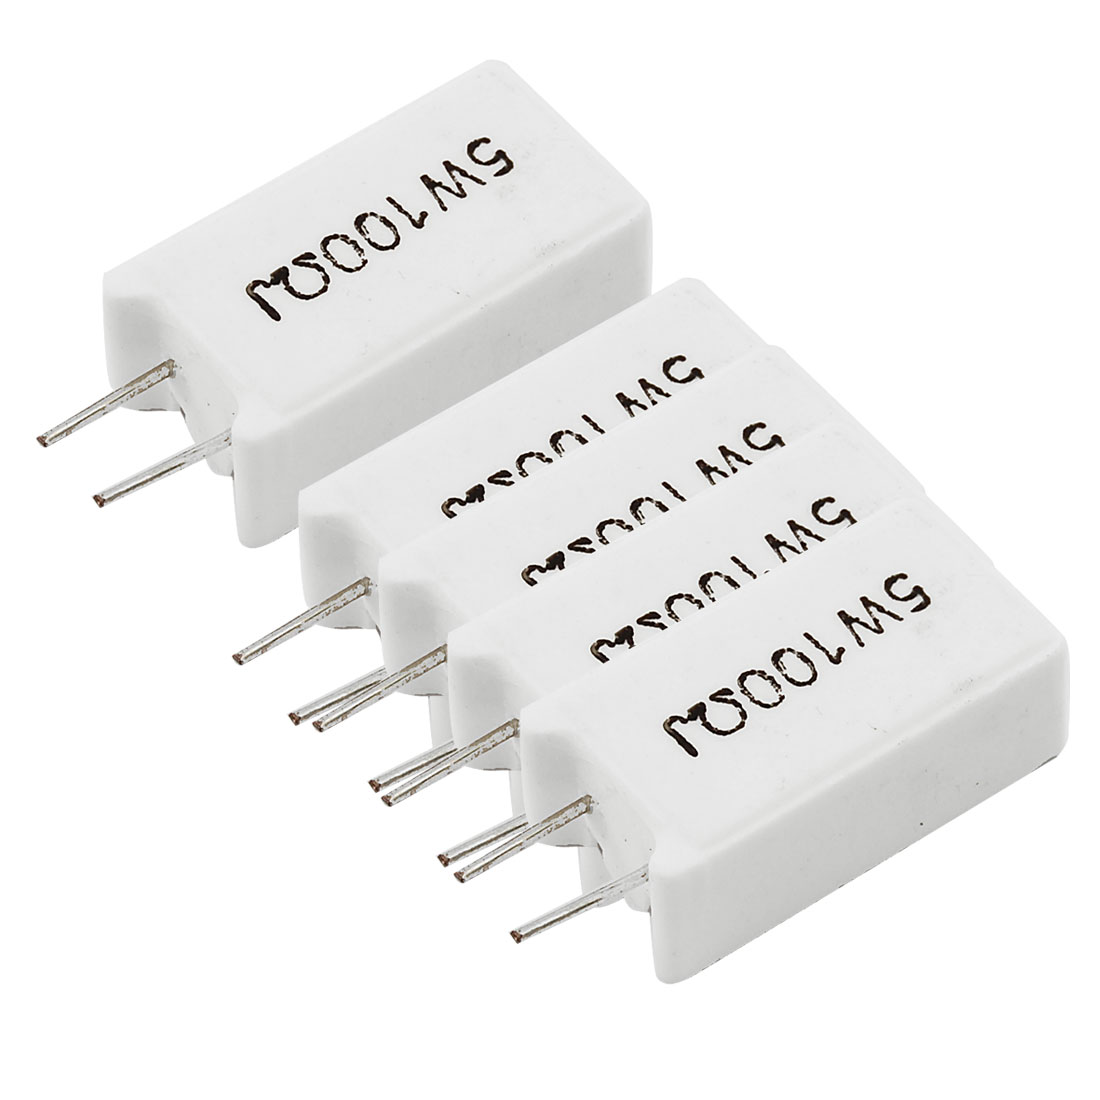 5 Pcs Wirewound Radial Lead Cement Resistors 5% 5W 5 Watt 100 Ohm